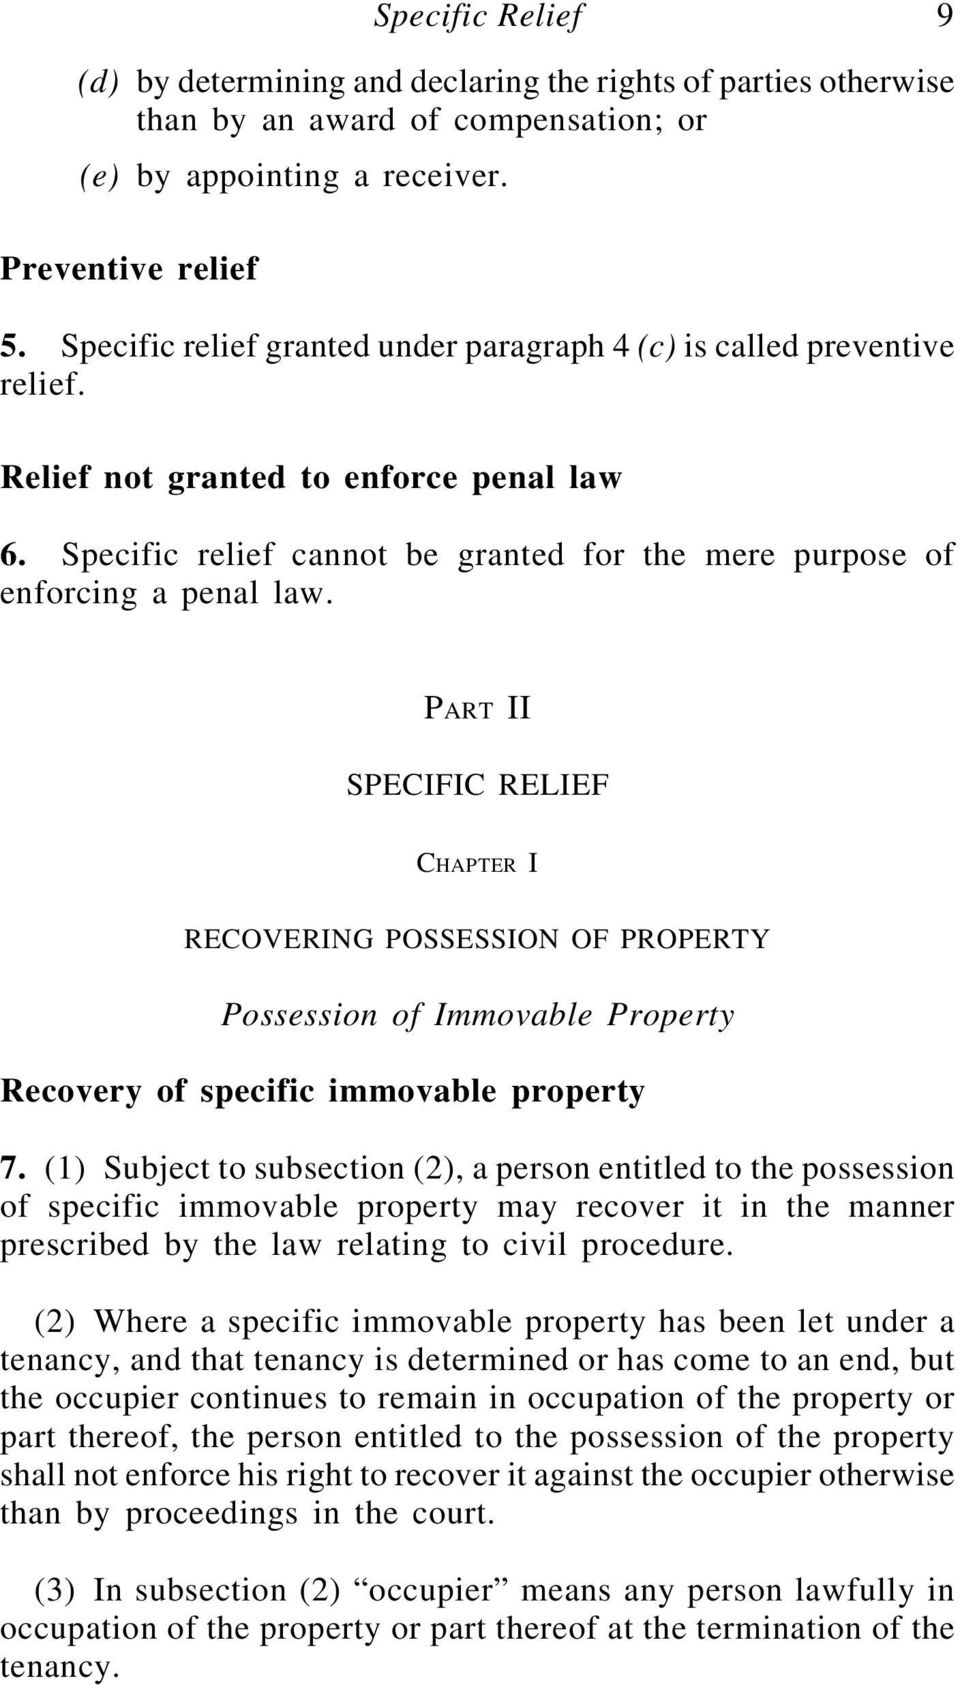 recovery of possession of immovable property